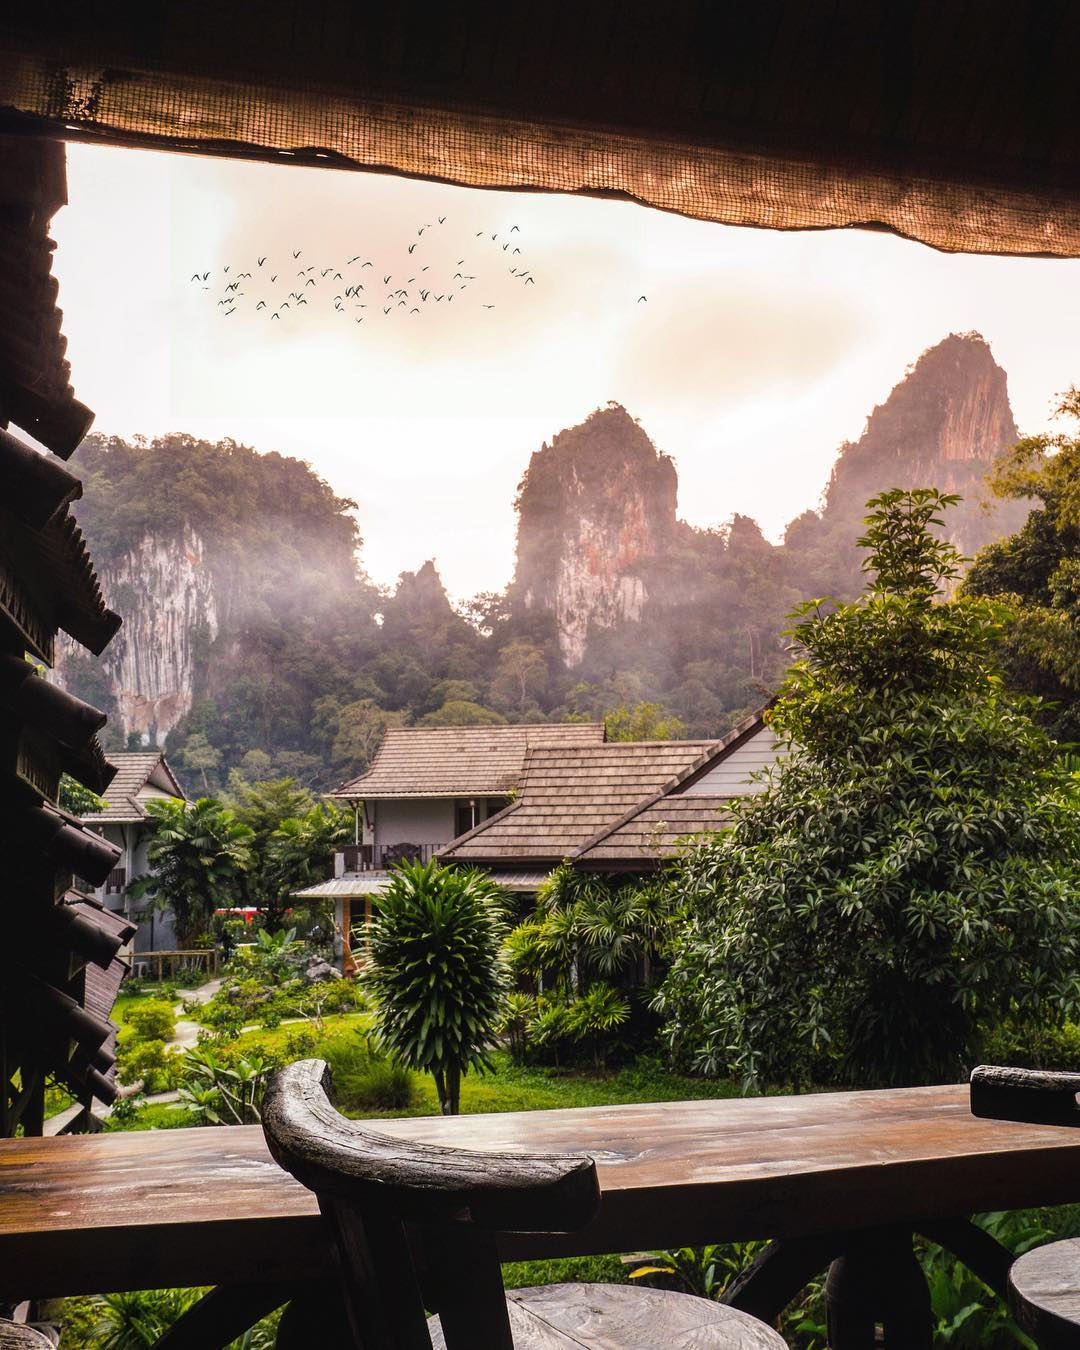 View from Montania Lifestyle Hotel of the limestone cliffs of Khao Sok National Park